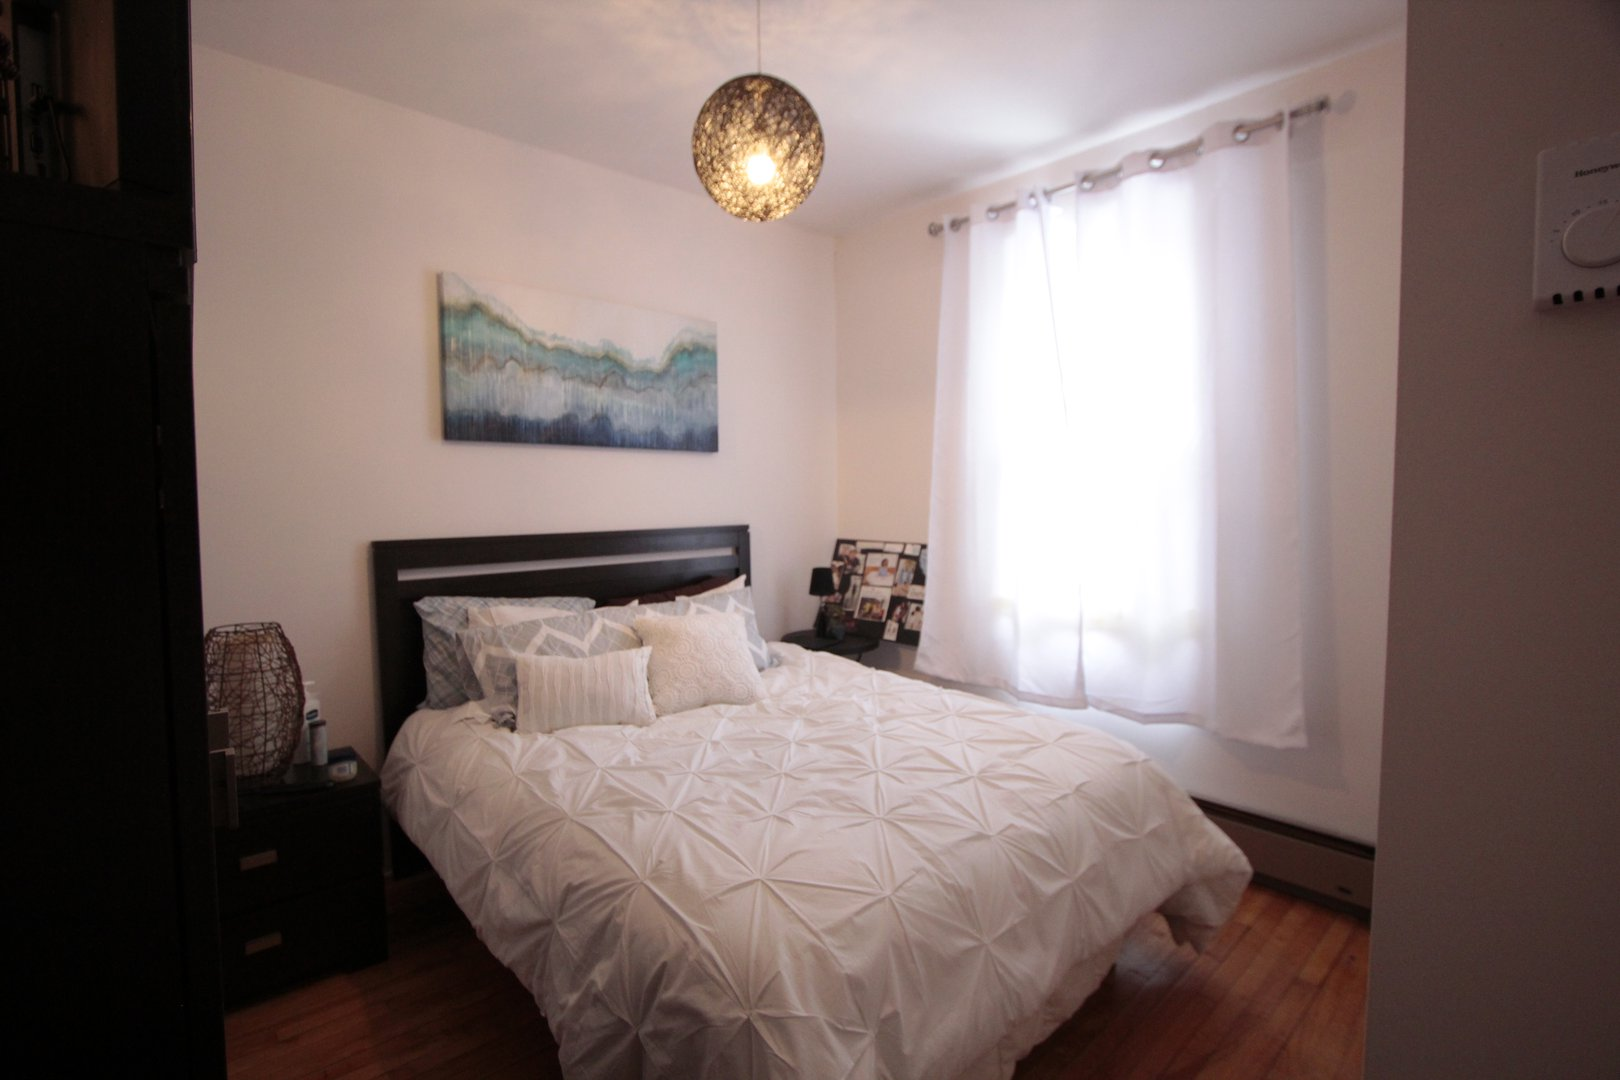 Apartment for rent at 4649 Avenue Clanranald, Montréal, QC. This is the bedroom with natural light and hardwood floor.